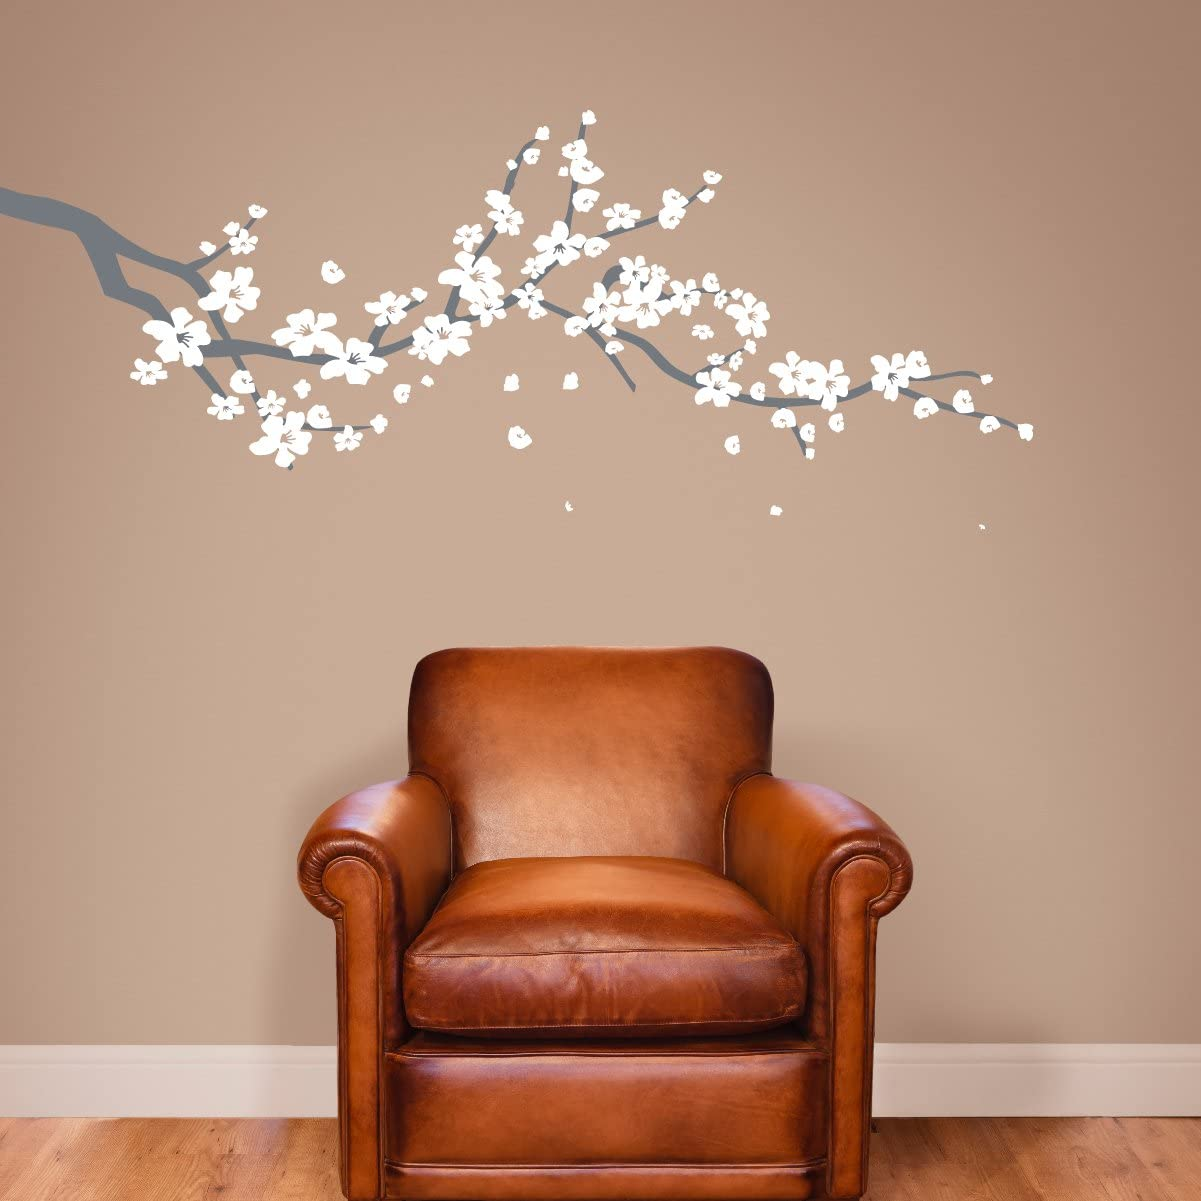 Large Japanese Cherry Blossom Tree Branch Vinyl Decal Wall Sticker for Girls Flowery Room Decor (Grey & White, 24x60 inches)